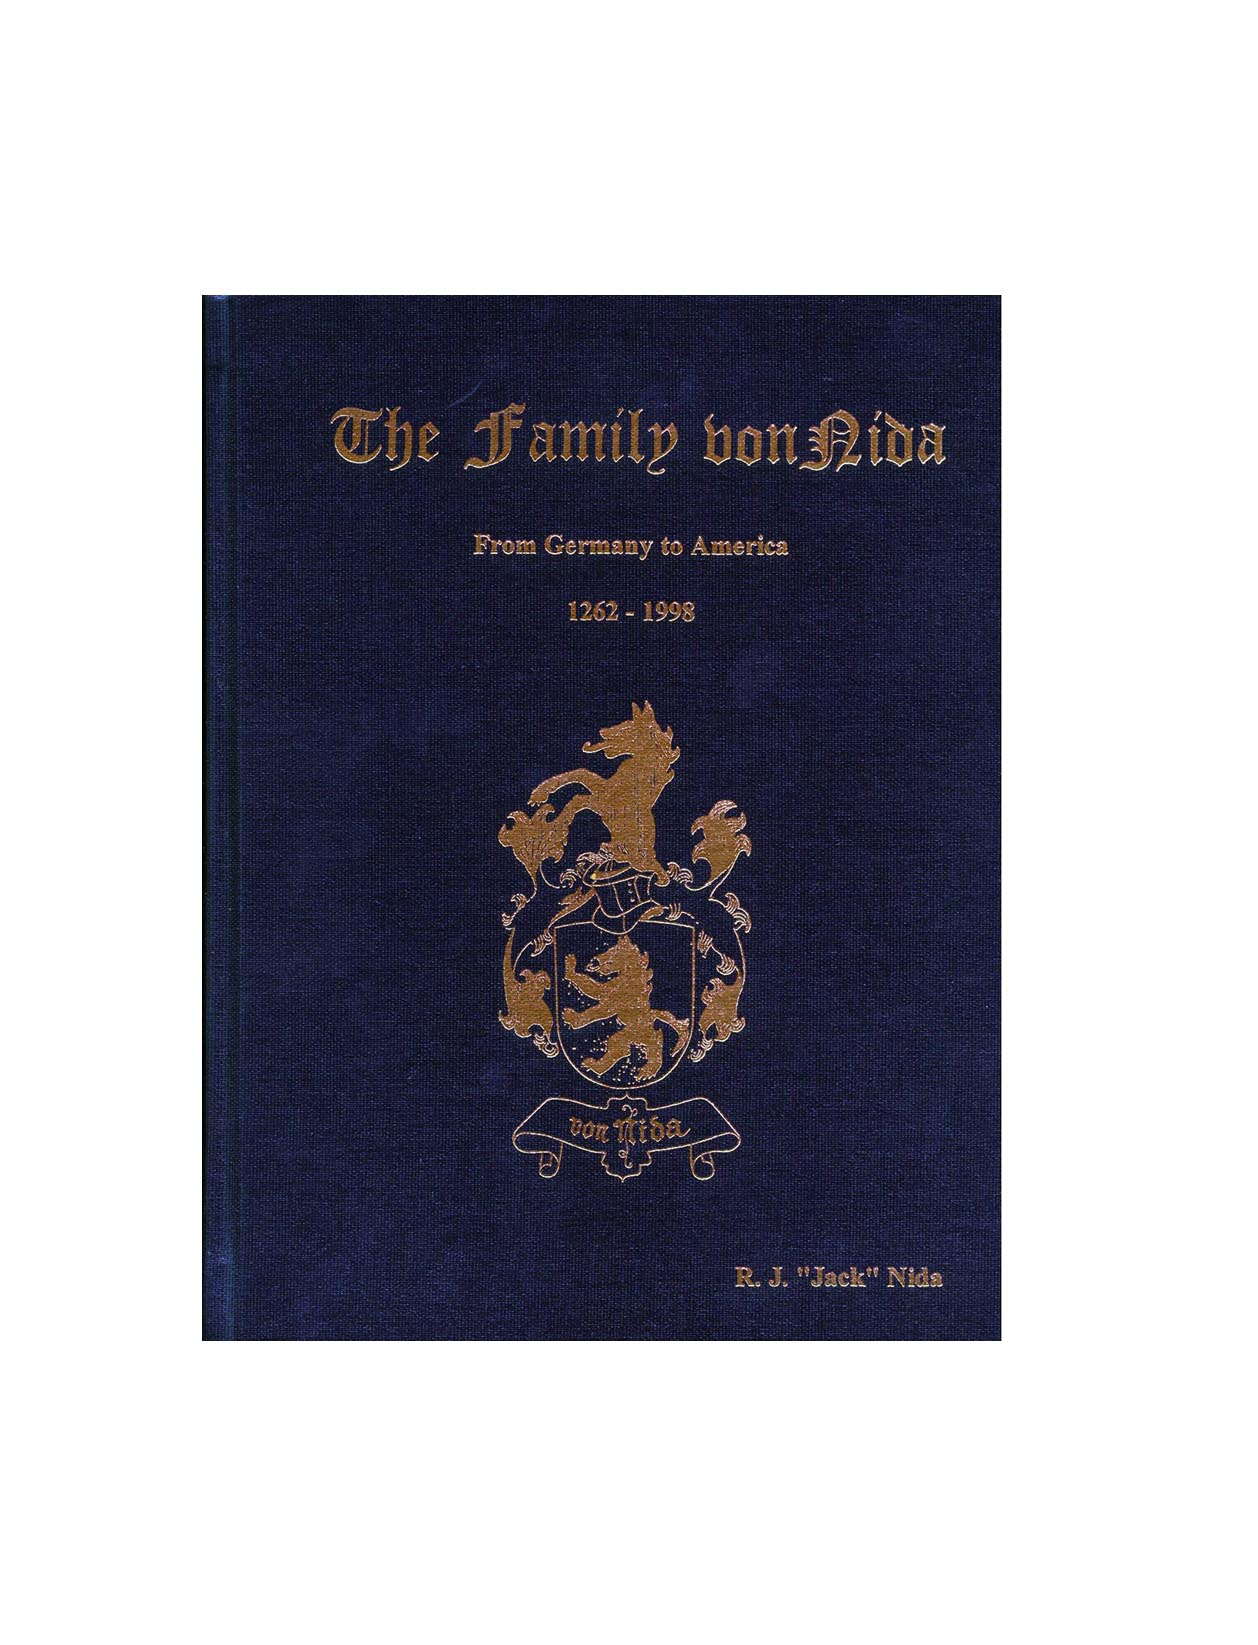 The Family von Nida - Our family history book